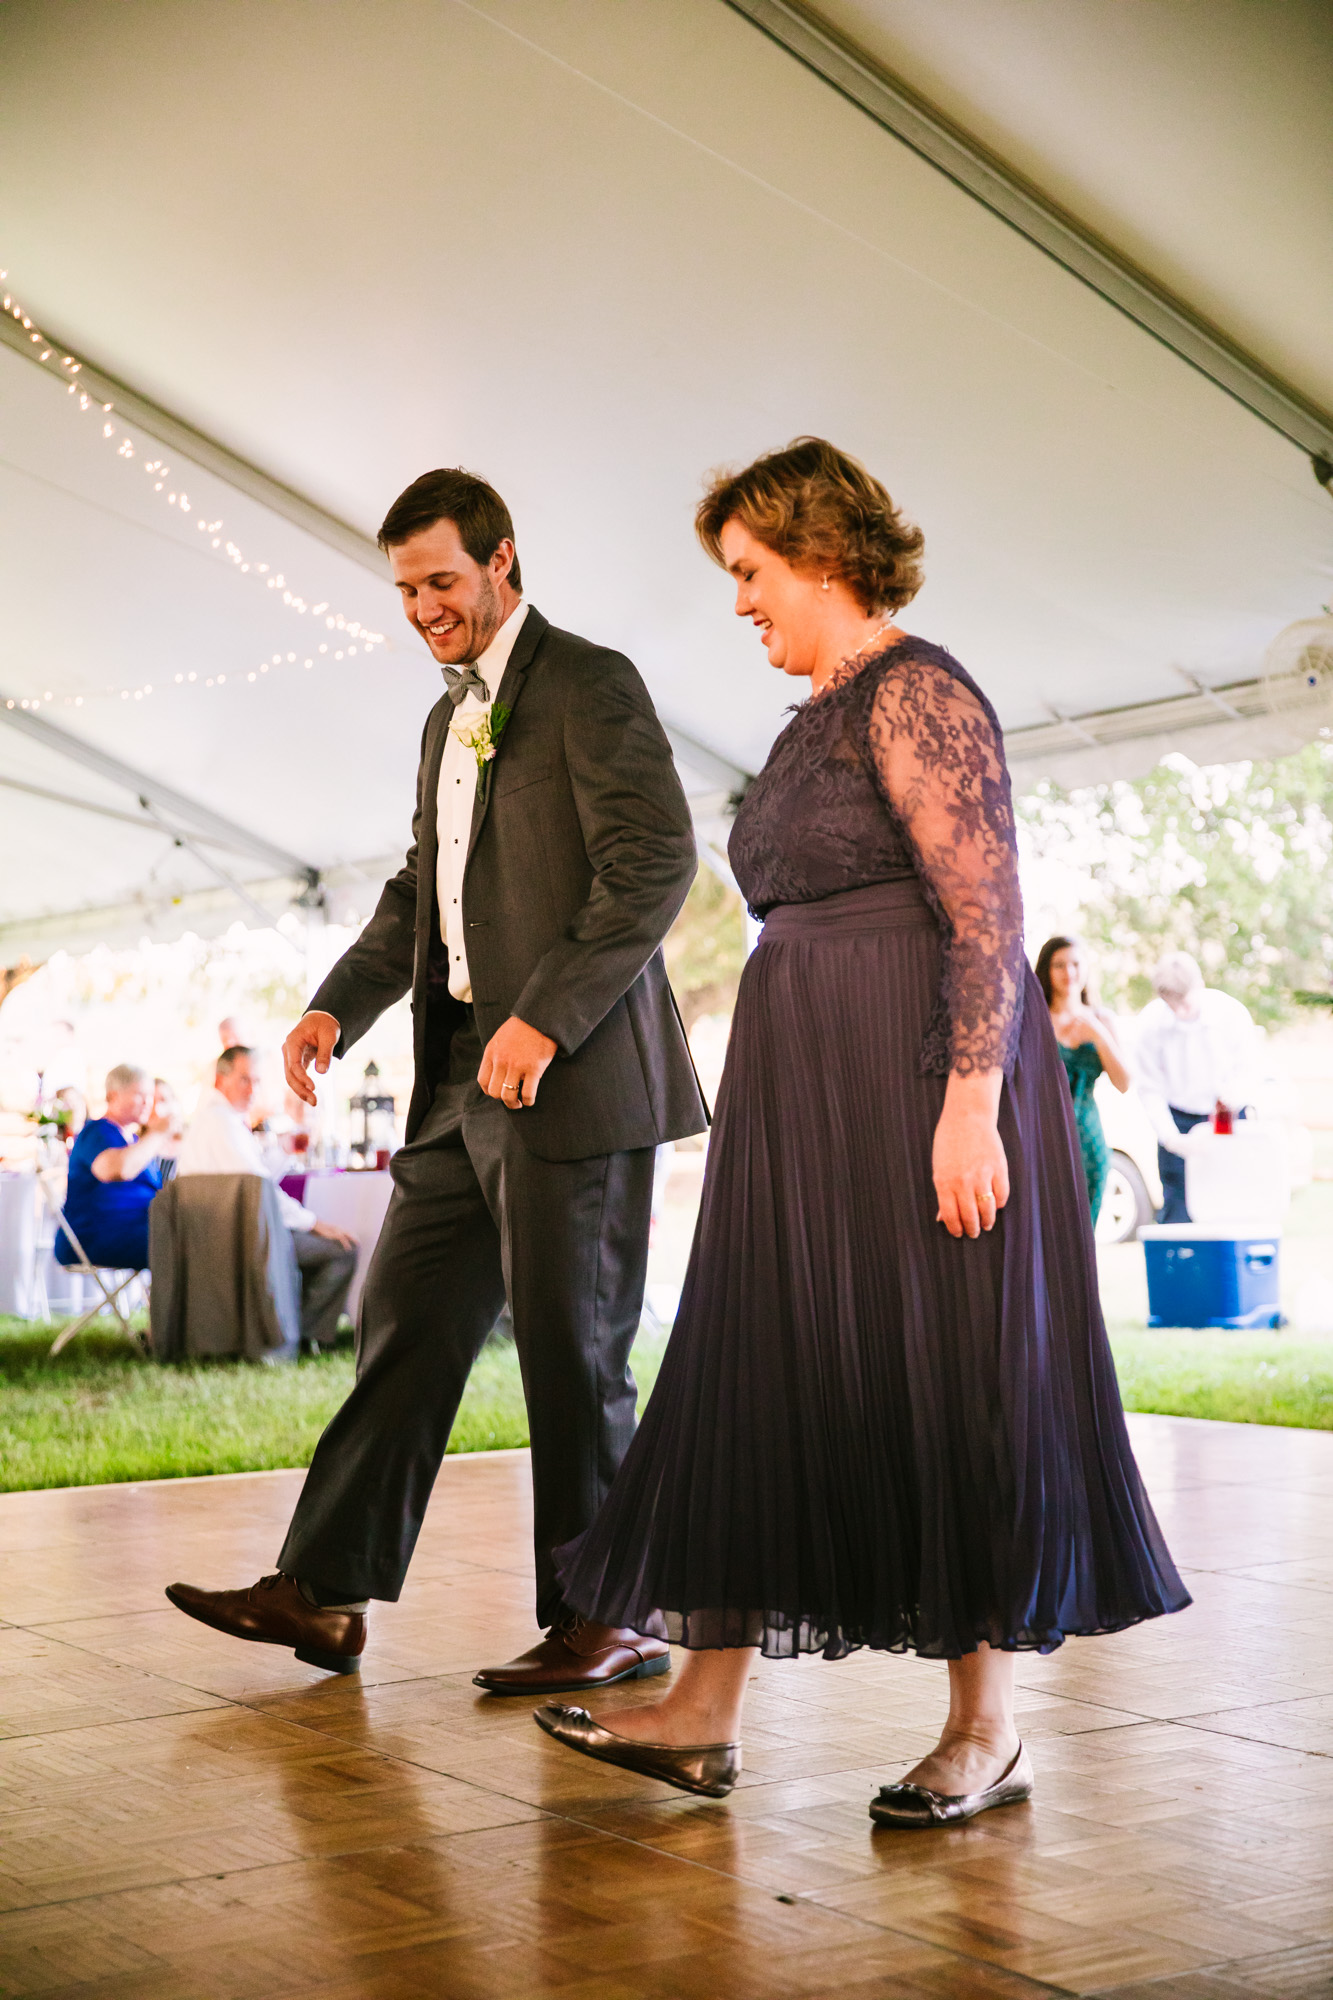 Waynesville, NC Wedding Photography | Wedding Reception Special Mother Son Dance